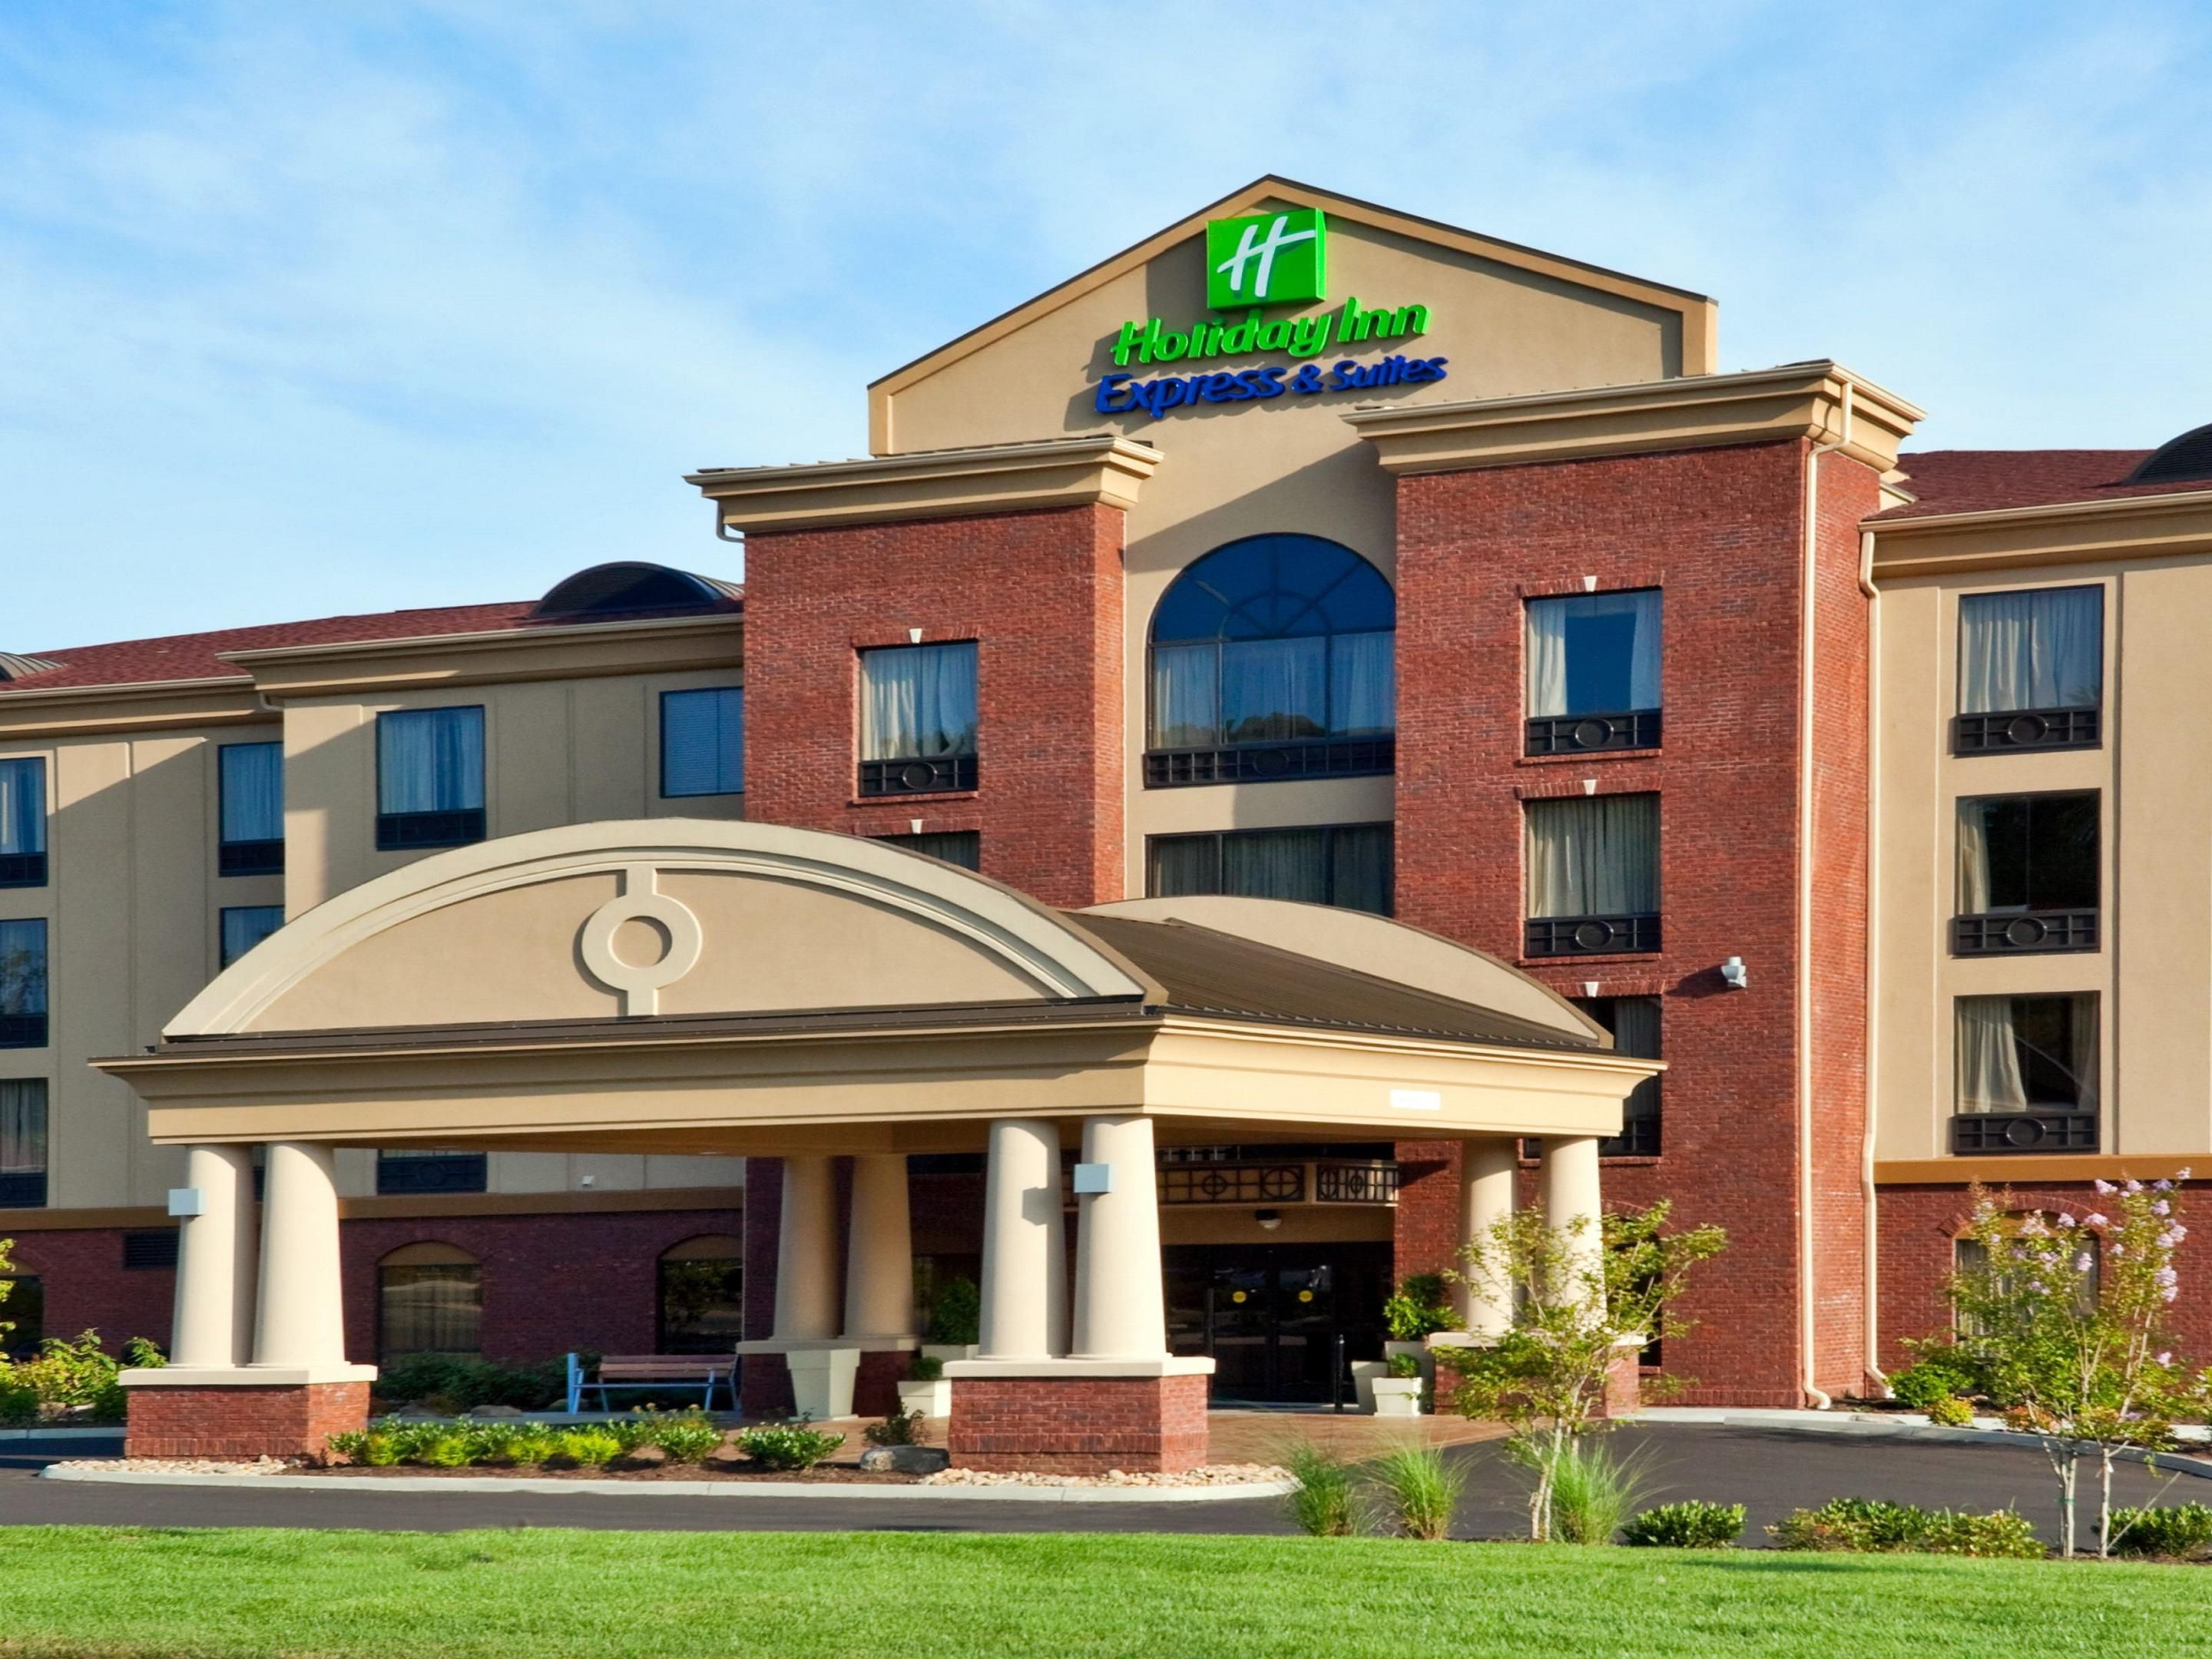 Welome to the Sevierville/ Kodak Holiday Inn Express